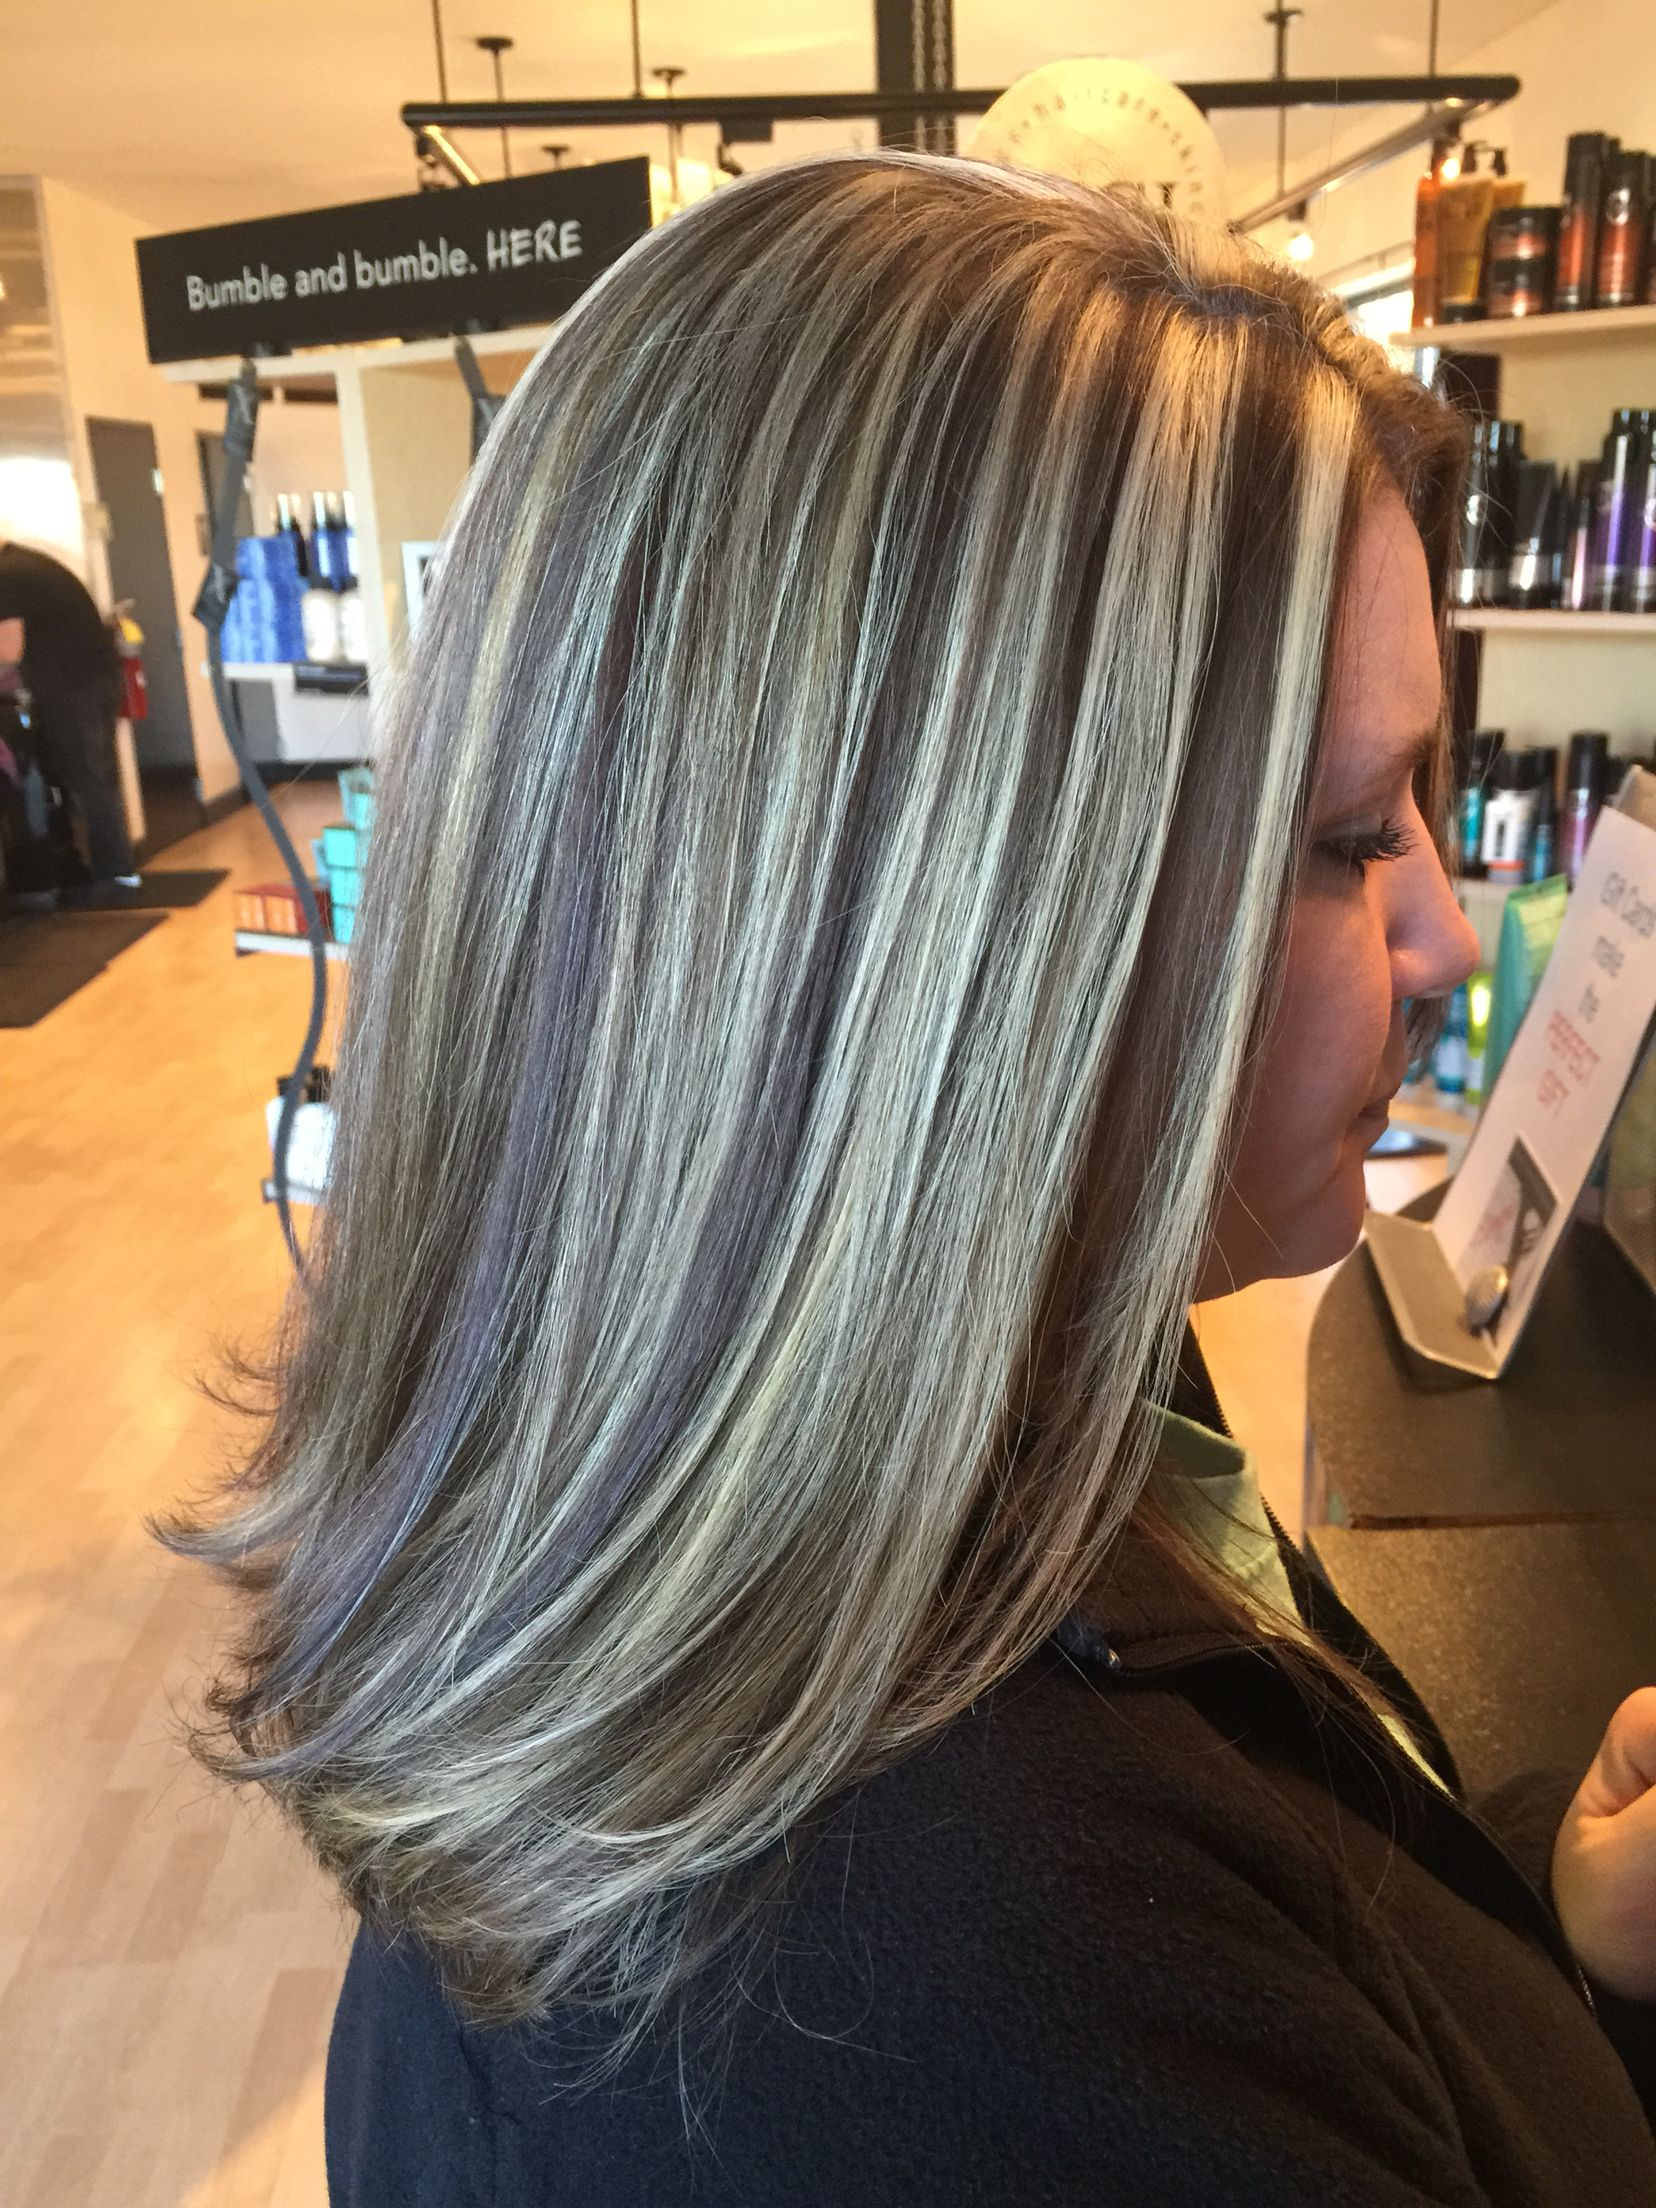 Pin On Hair By Denise Suttlemyre